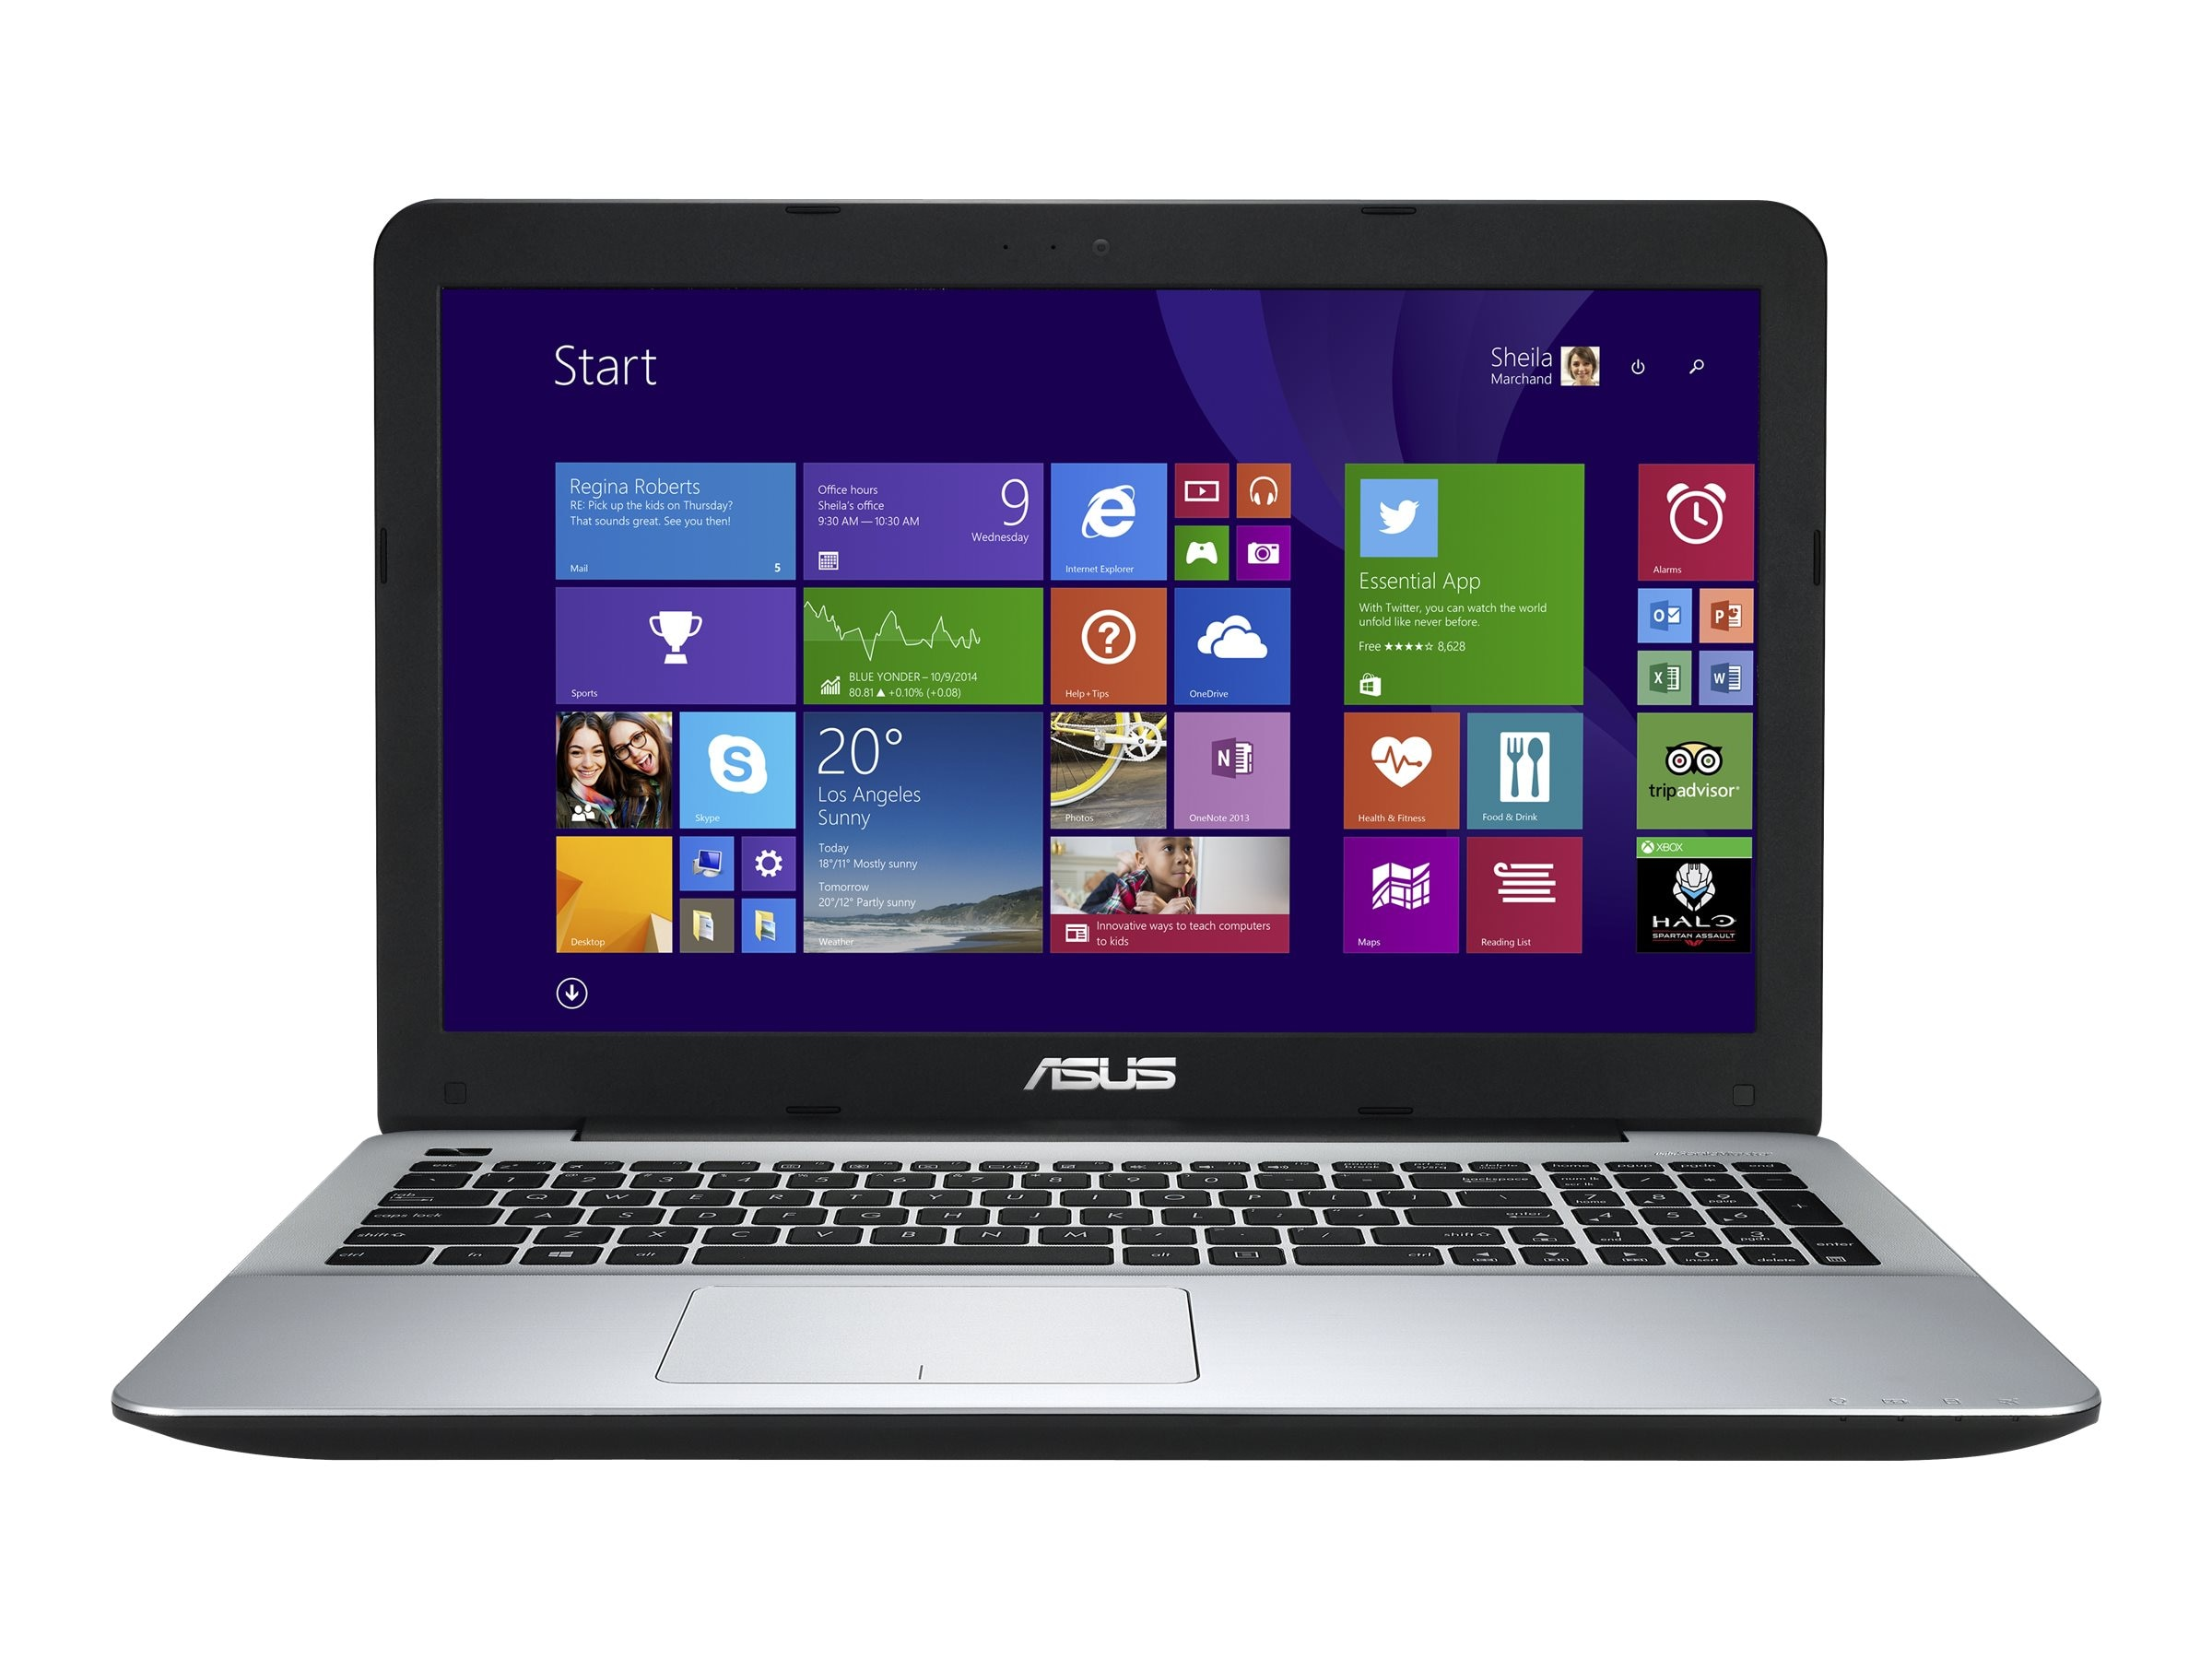 Asus F555LA-EH51 Core i5-5200U 2.2GHz 8GB 1TB DVD-RW ac BT WC 2C 15.6 HD W10H64